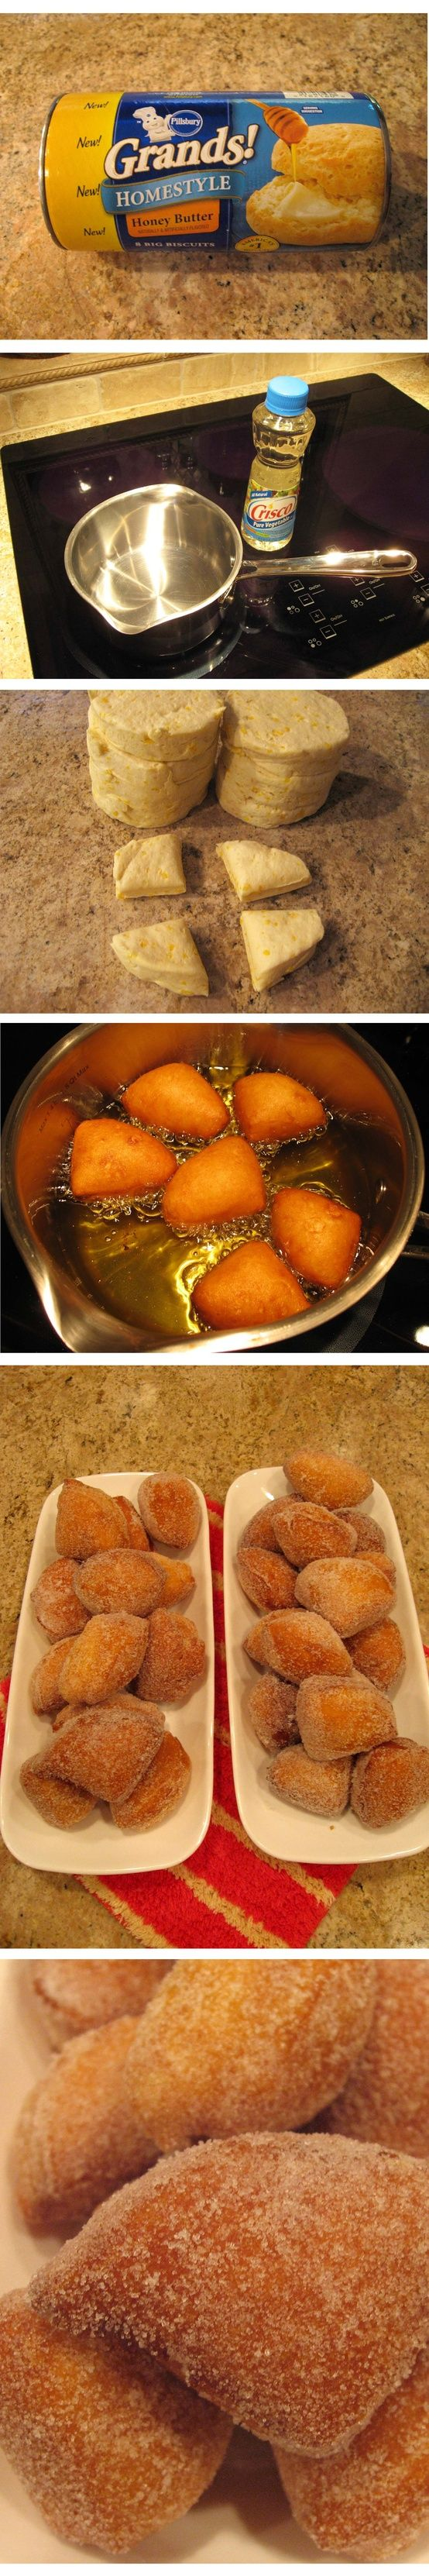 Homemade Beignets.... Cut biscuits into quarters, drop in 200 - 240° oil for a couple of minutes (flip halfway), cool sightly on paper towel, roll in sugar, brown sugar, powdered sugar, ENJOY - best fresh.